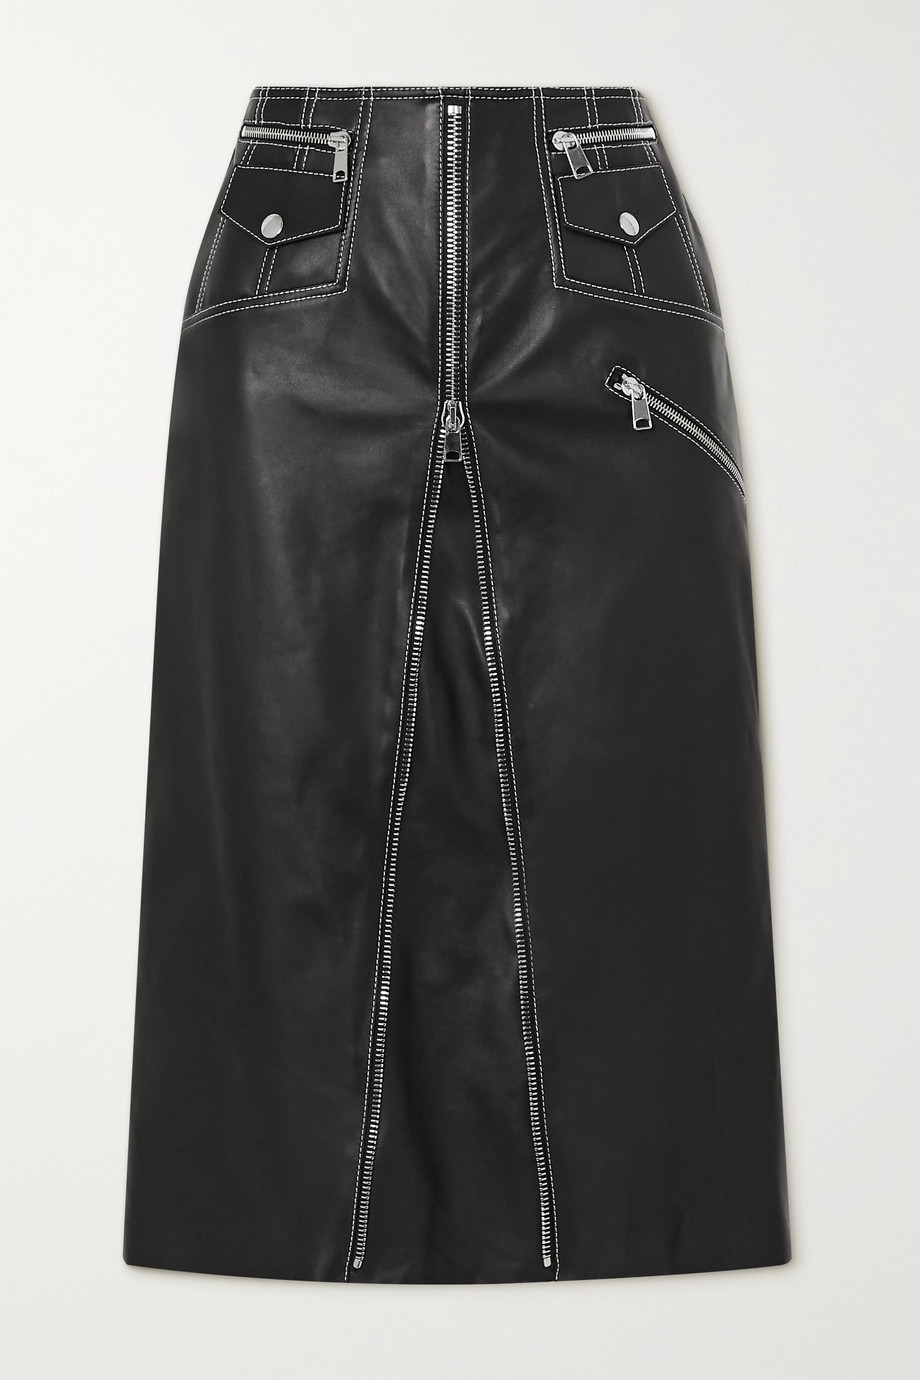 Alexander McQueen Zip-embellished topstitched leather midi skirt